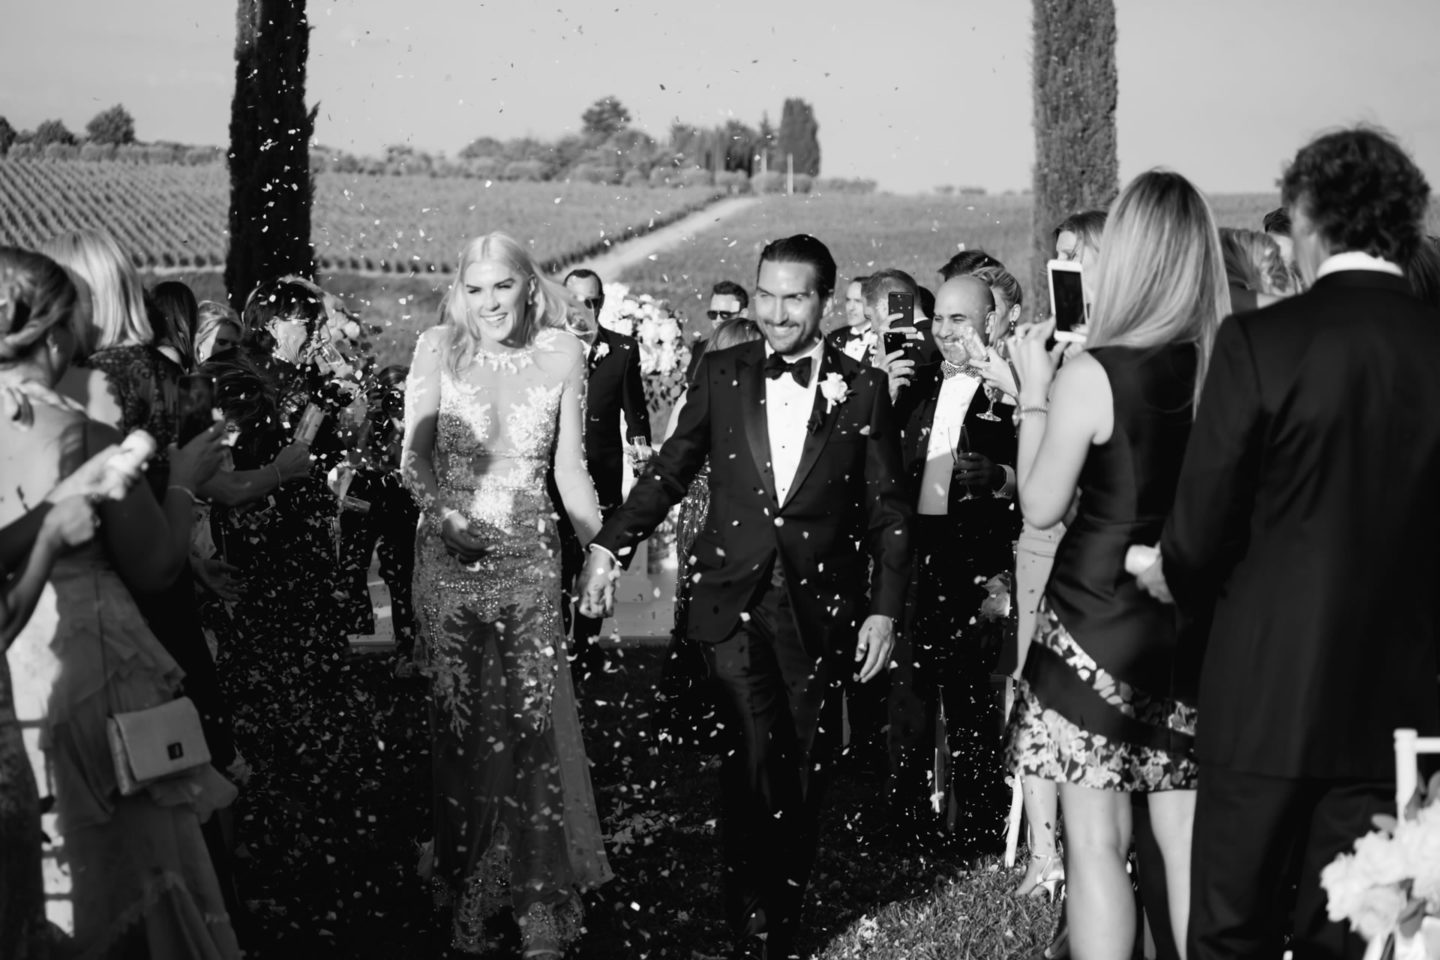 Rice :: Exciting wedding in the countryside of Siena :: Luxury wedding photography - 41 :: Rice